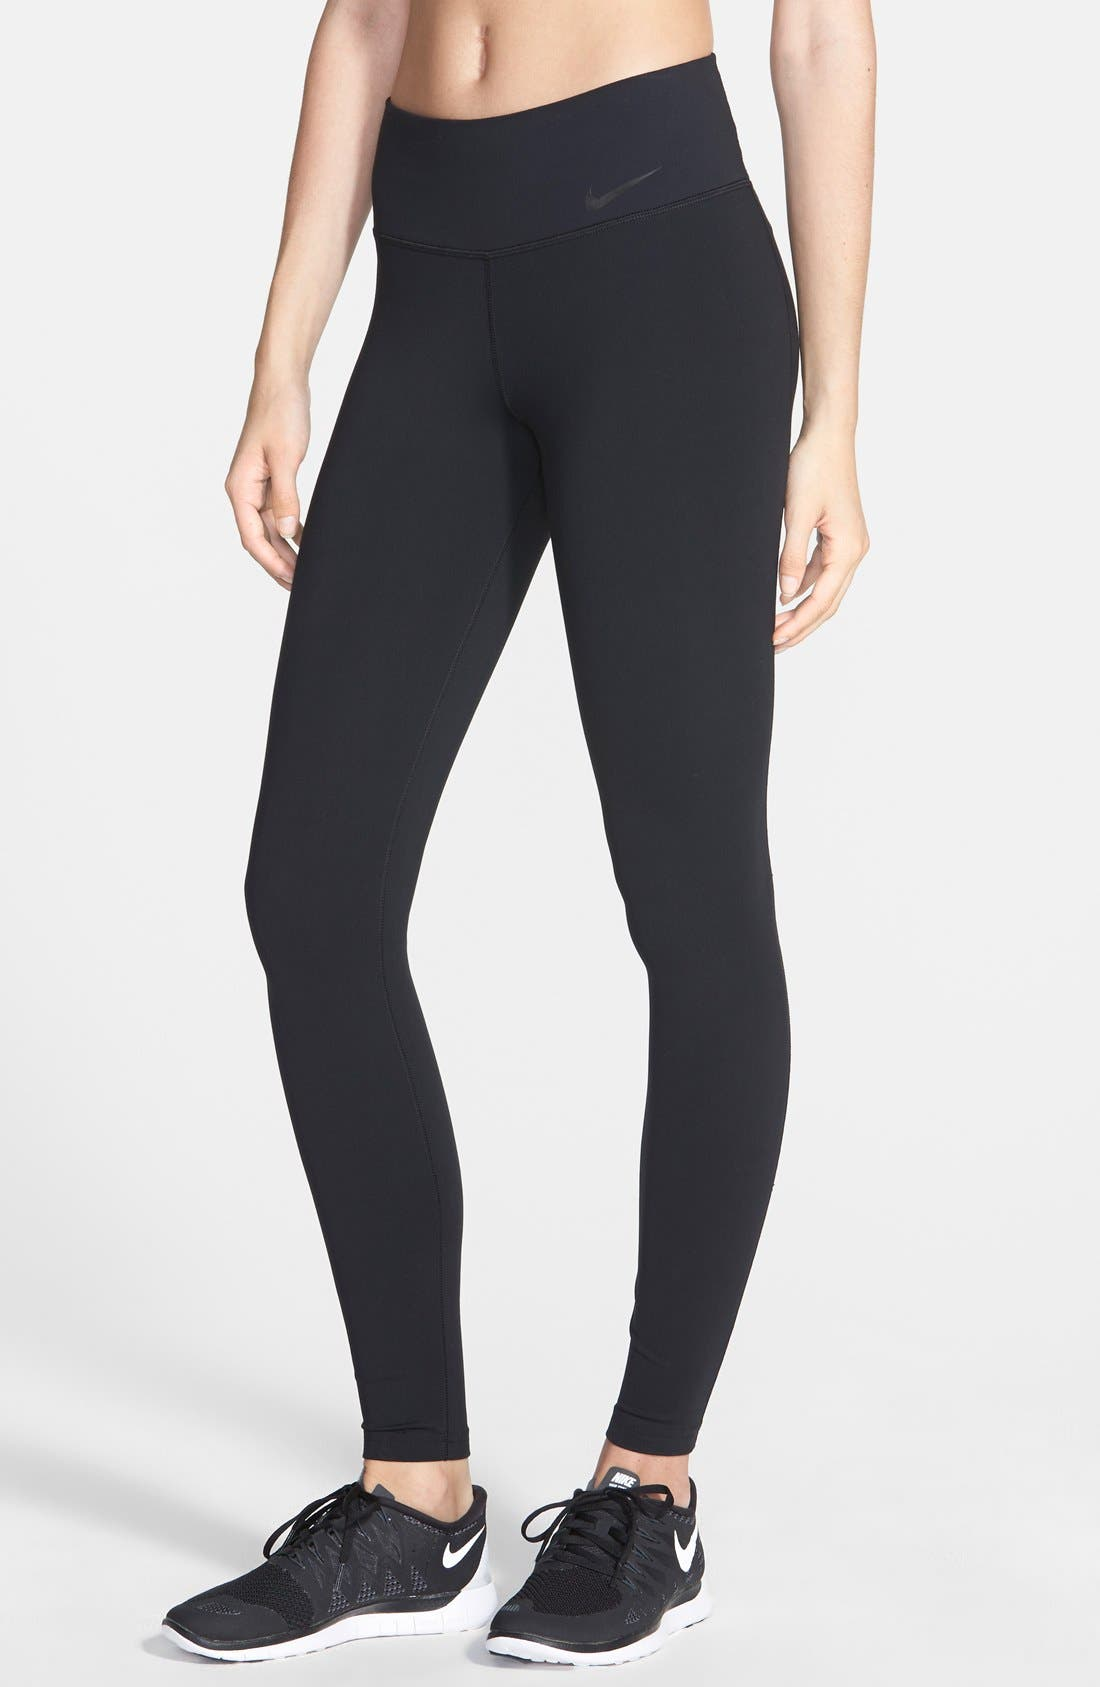 Main Image - Nike 'Legendary' Dri-FIT Training Tights